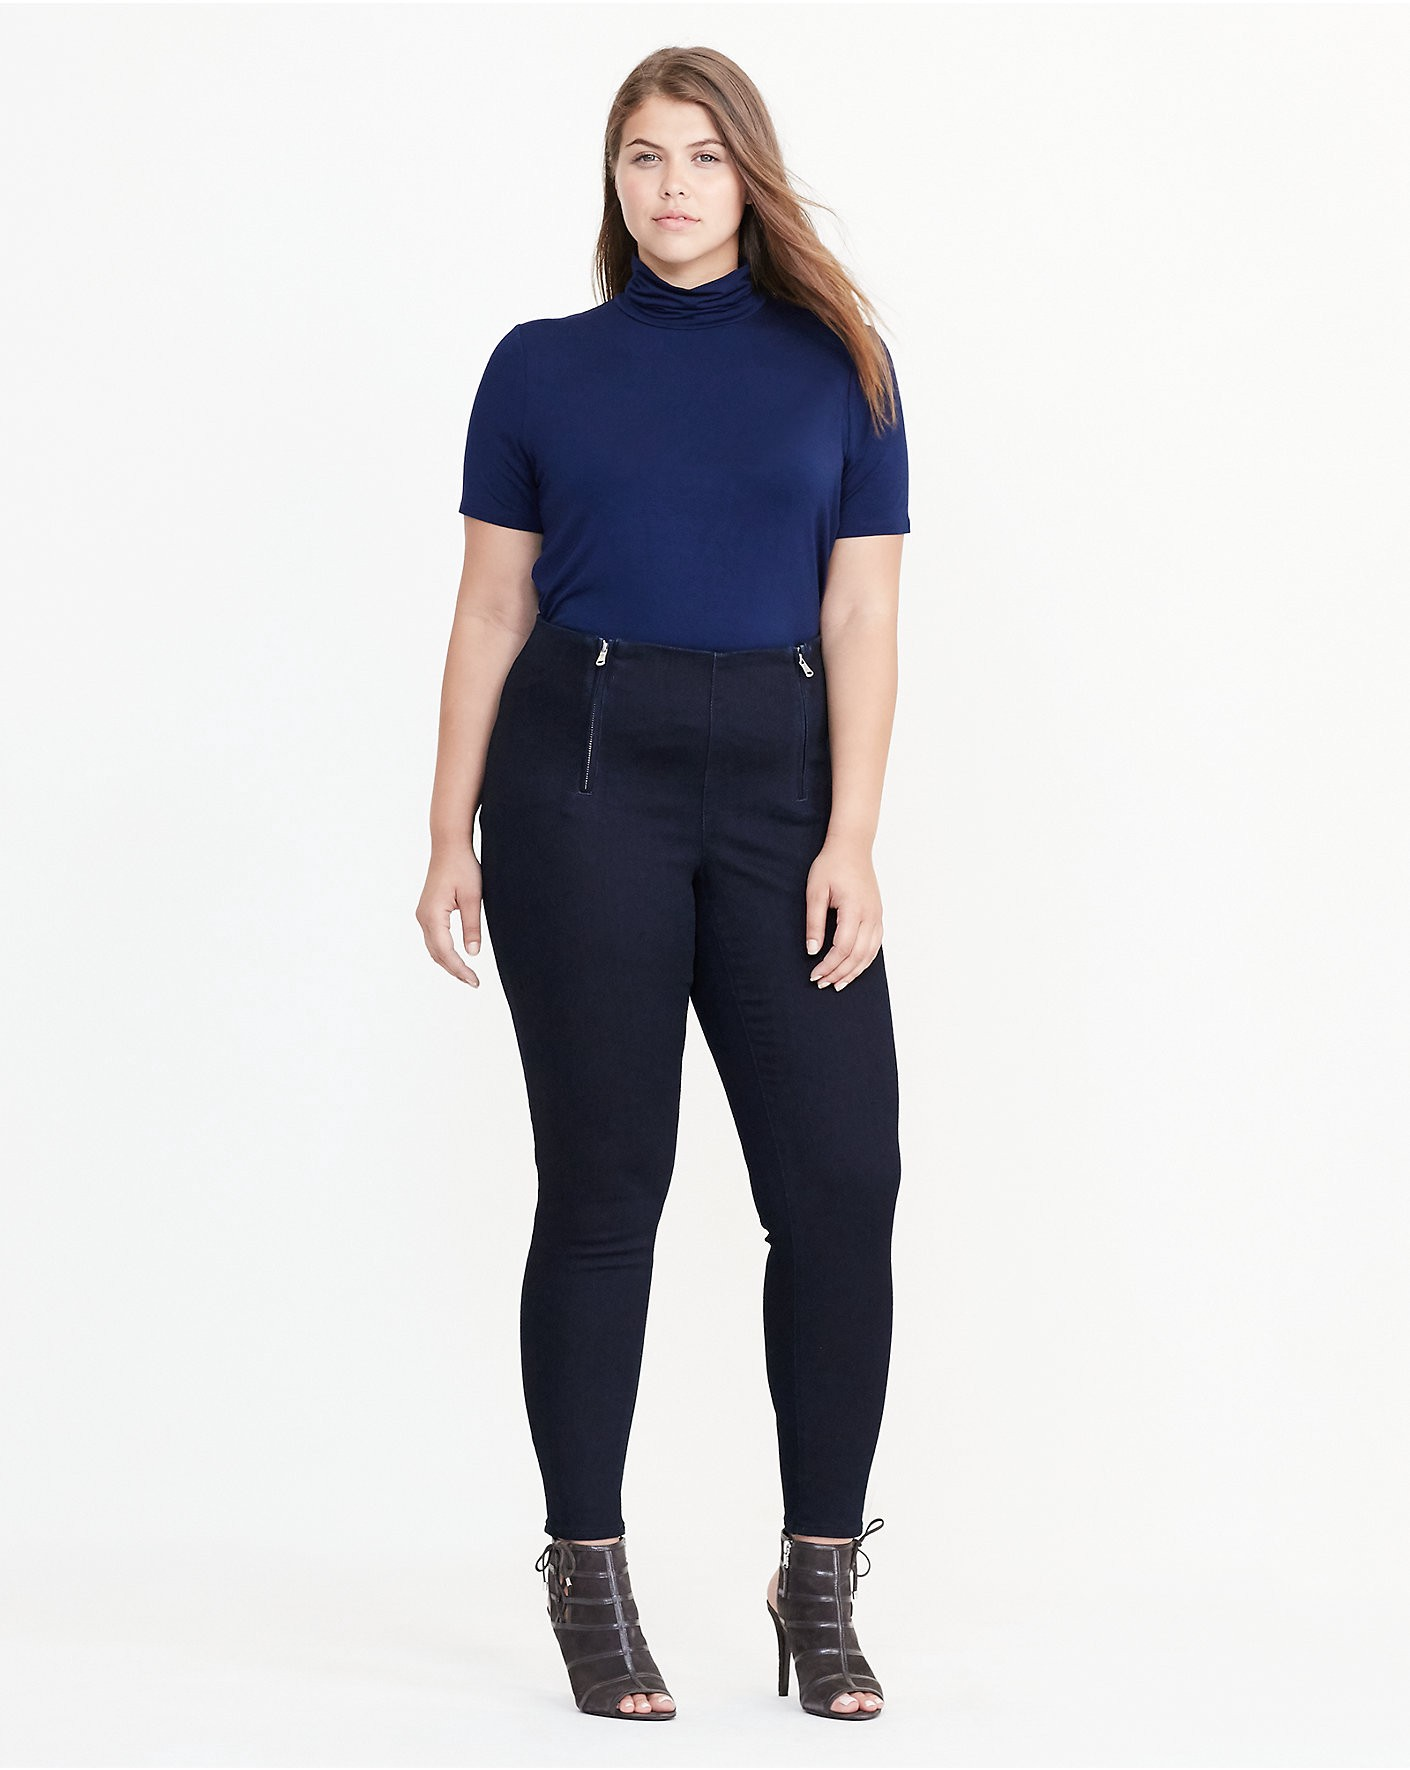 RALPH LAUREN Stretch Cotton Skinny Pant in Ink Wash